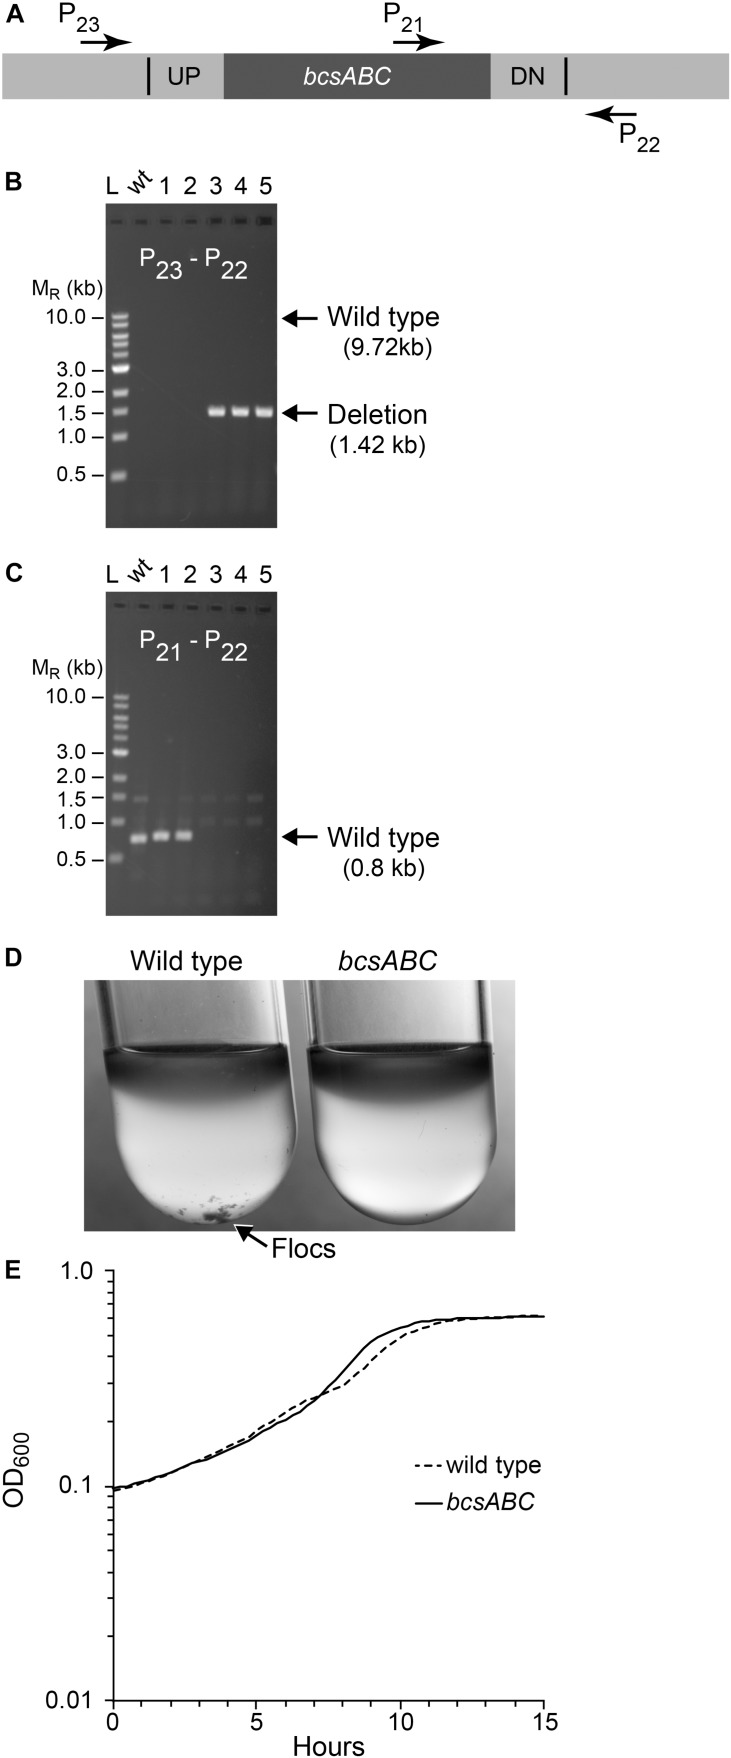 Deletion of bcsABC operon. Non-fluorescent deletion candidates for bcsABC were isolated using the same workflow as outlined for ldh and screened for deletions or wild-type (wt) alleles by PCR amplification. (A) The location of primers used to distinguish between the wt and the deletion genotype is indicated by arrows. (B,C) Agarose gel electrophoresis of products from PCR amplification of five non-fluorescent candidate colonies. (B) Amplification using primers P 22 and P 23 yielded a DNA fragment of 1.4 kb for the deletion of bcsABC (three total), while wt cells are expected to produce an amplicon of ∼10 kb, which was poorly amplified under our reaction conditions. (C) To verify the genotype of wt strains, a second PCR experiment using primers P21 and P22 was included. In this case, wt strains are expected to yield an amplicon of 0.7 kb while the deletion strain should not produce a band. Similar results were obtained from six biological replicates of this workflow. (D) To test the phenotype of our mutant, we compared flocculation of the wt (left) and deletion strain (right) after growth for 15 h in glucose minimal media under aerobic conditions. Flocs are indicated by the arrow. (E) Growth curve of wt and mutant strains grown in glucose minimal media under anaerobic conditions.